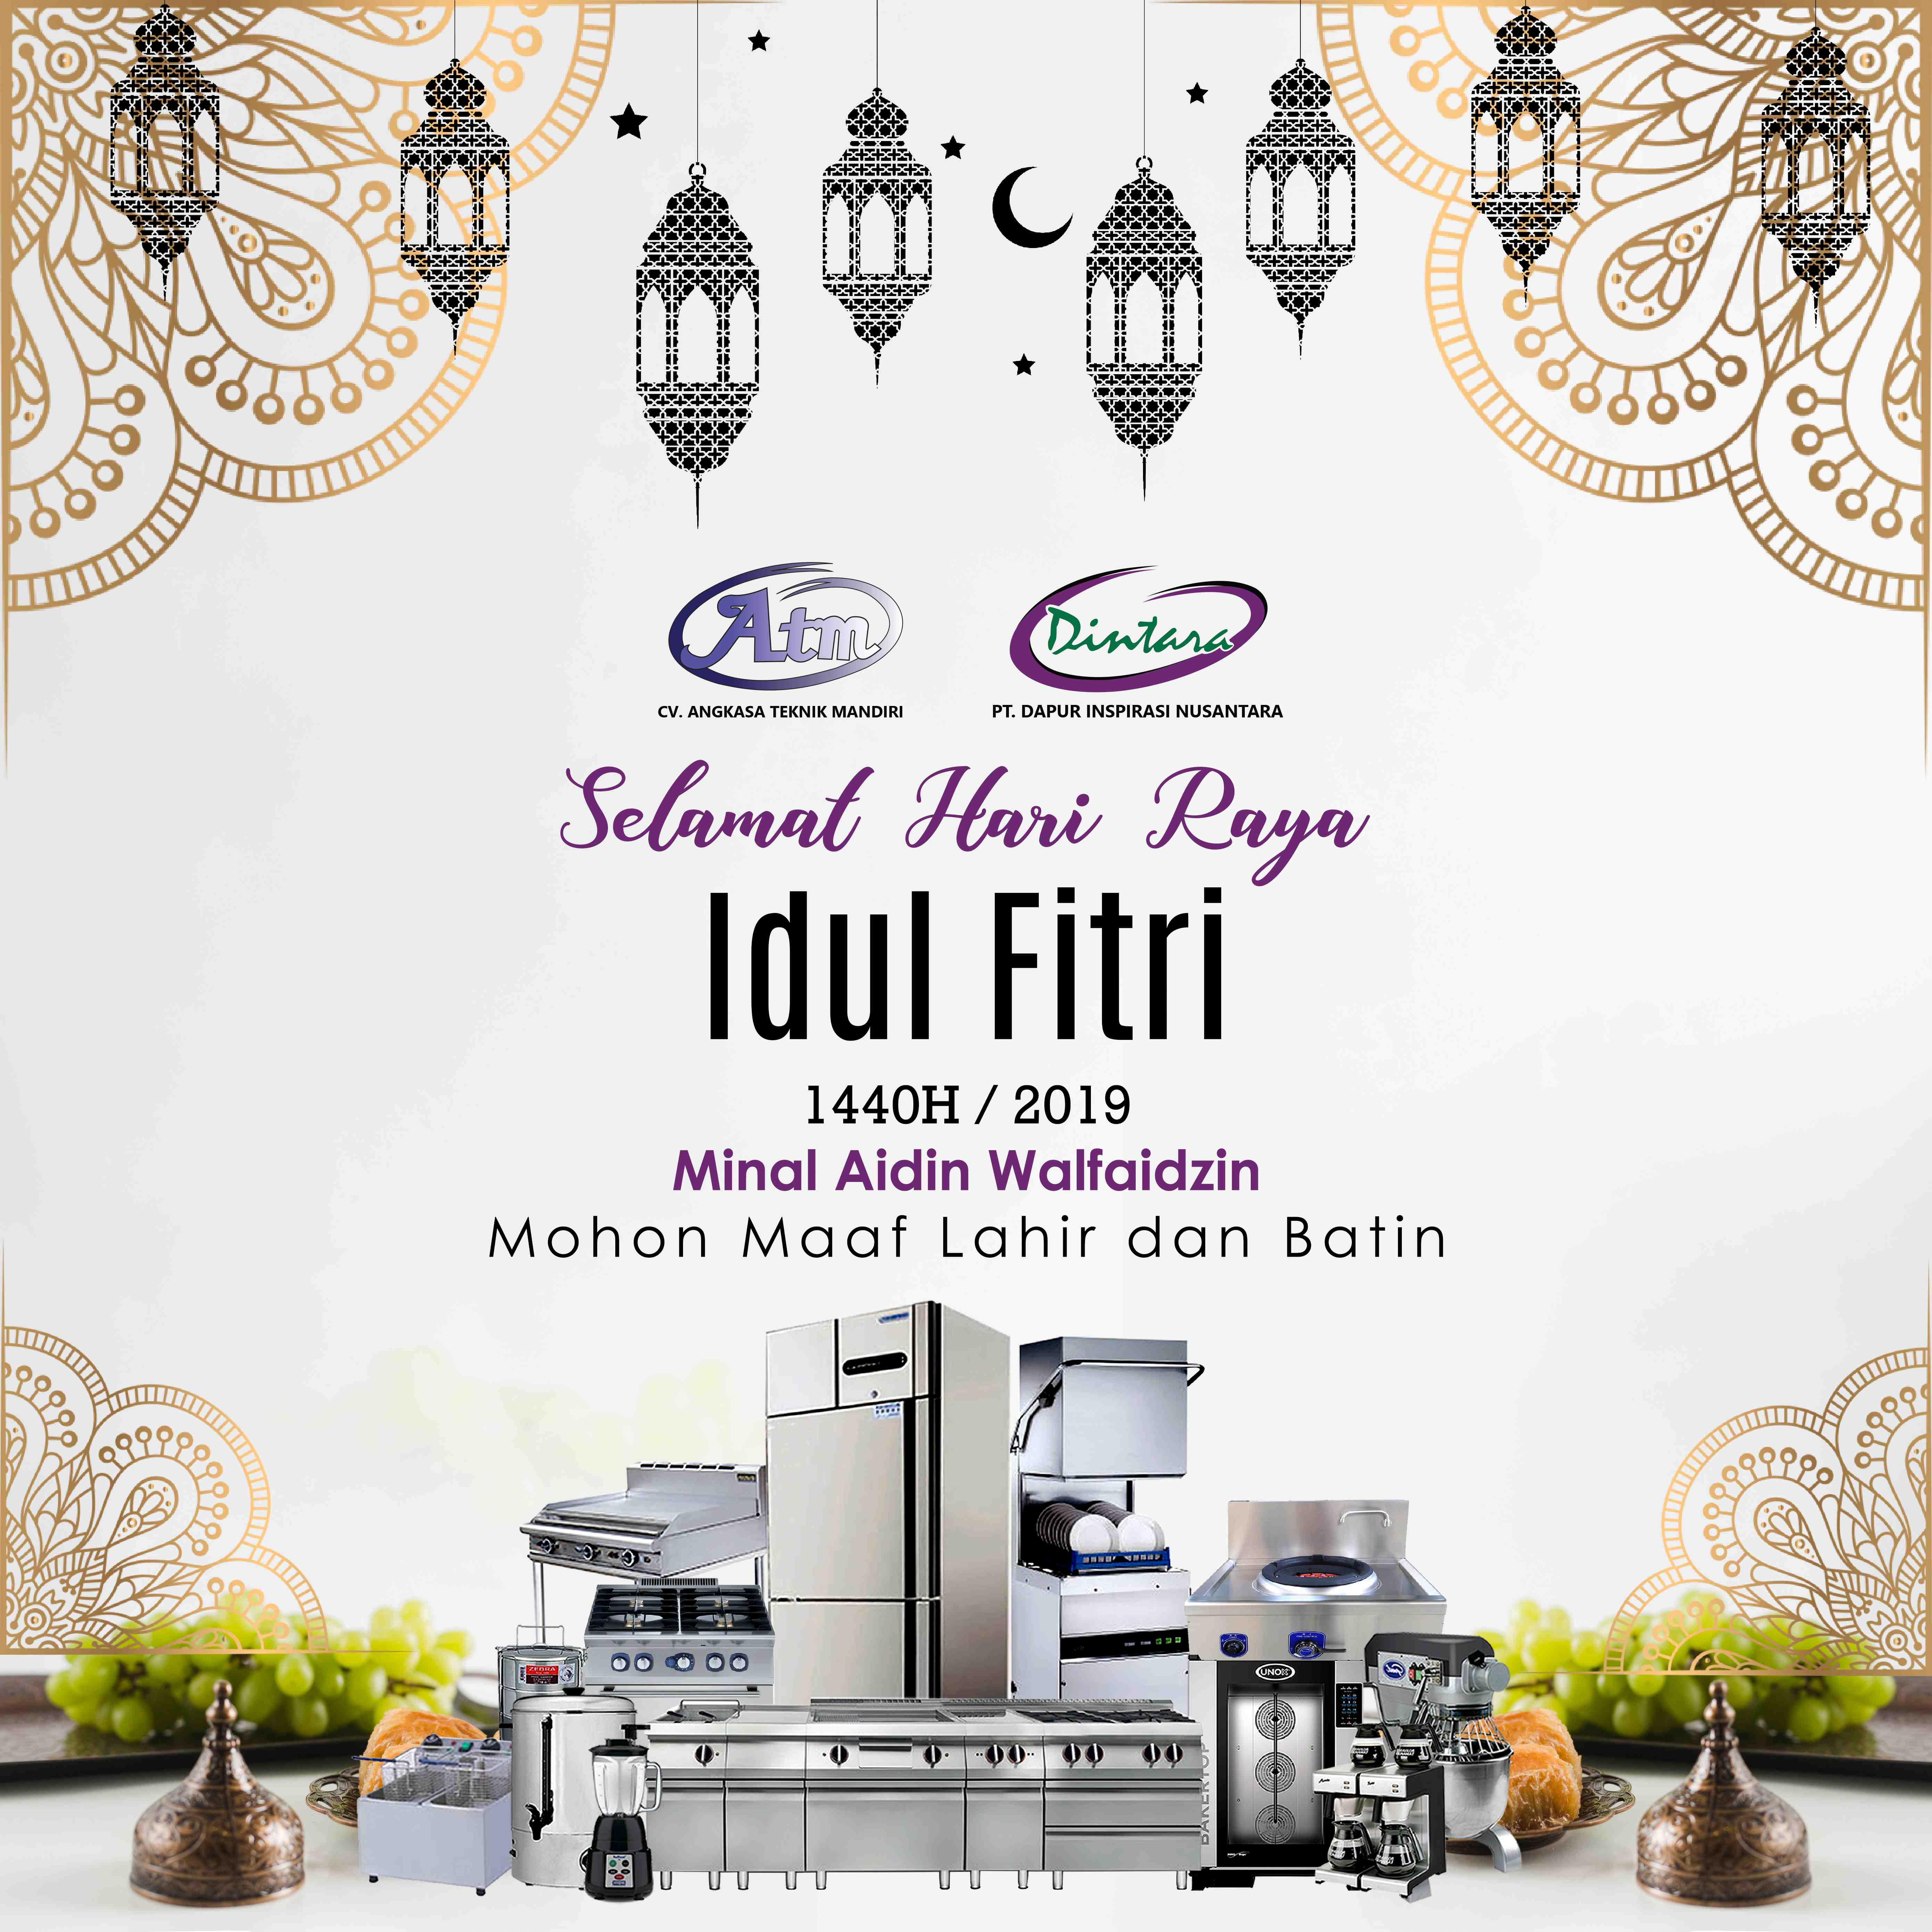 Idul Fitri Promo Dintara Kitchen and Wishes Gift